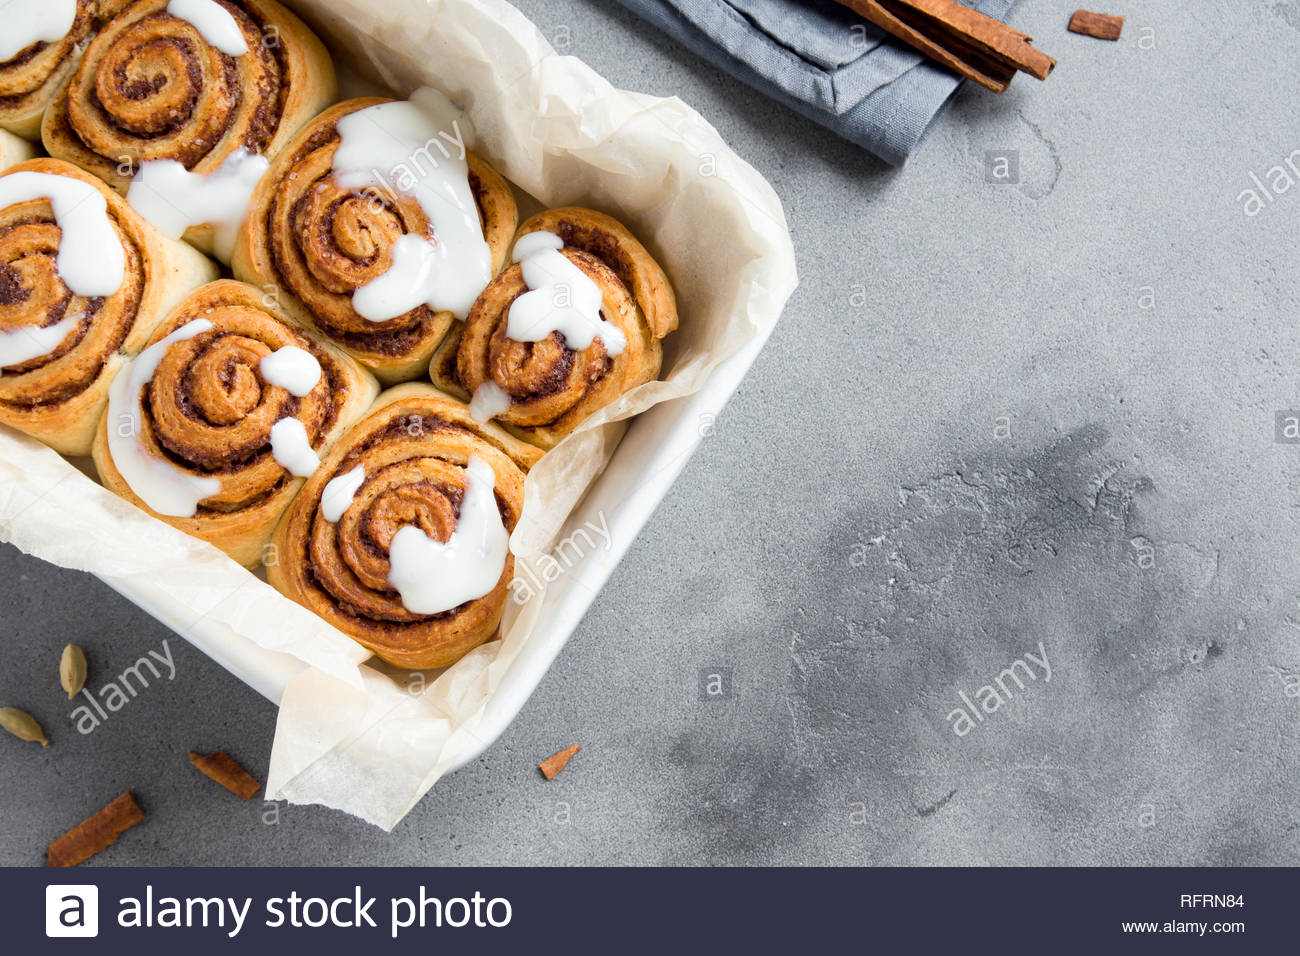 Cinnamon rolls or cinnabon homemade recipe of sweet traditional 1300x956